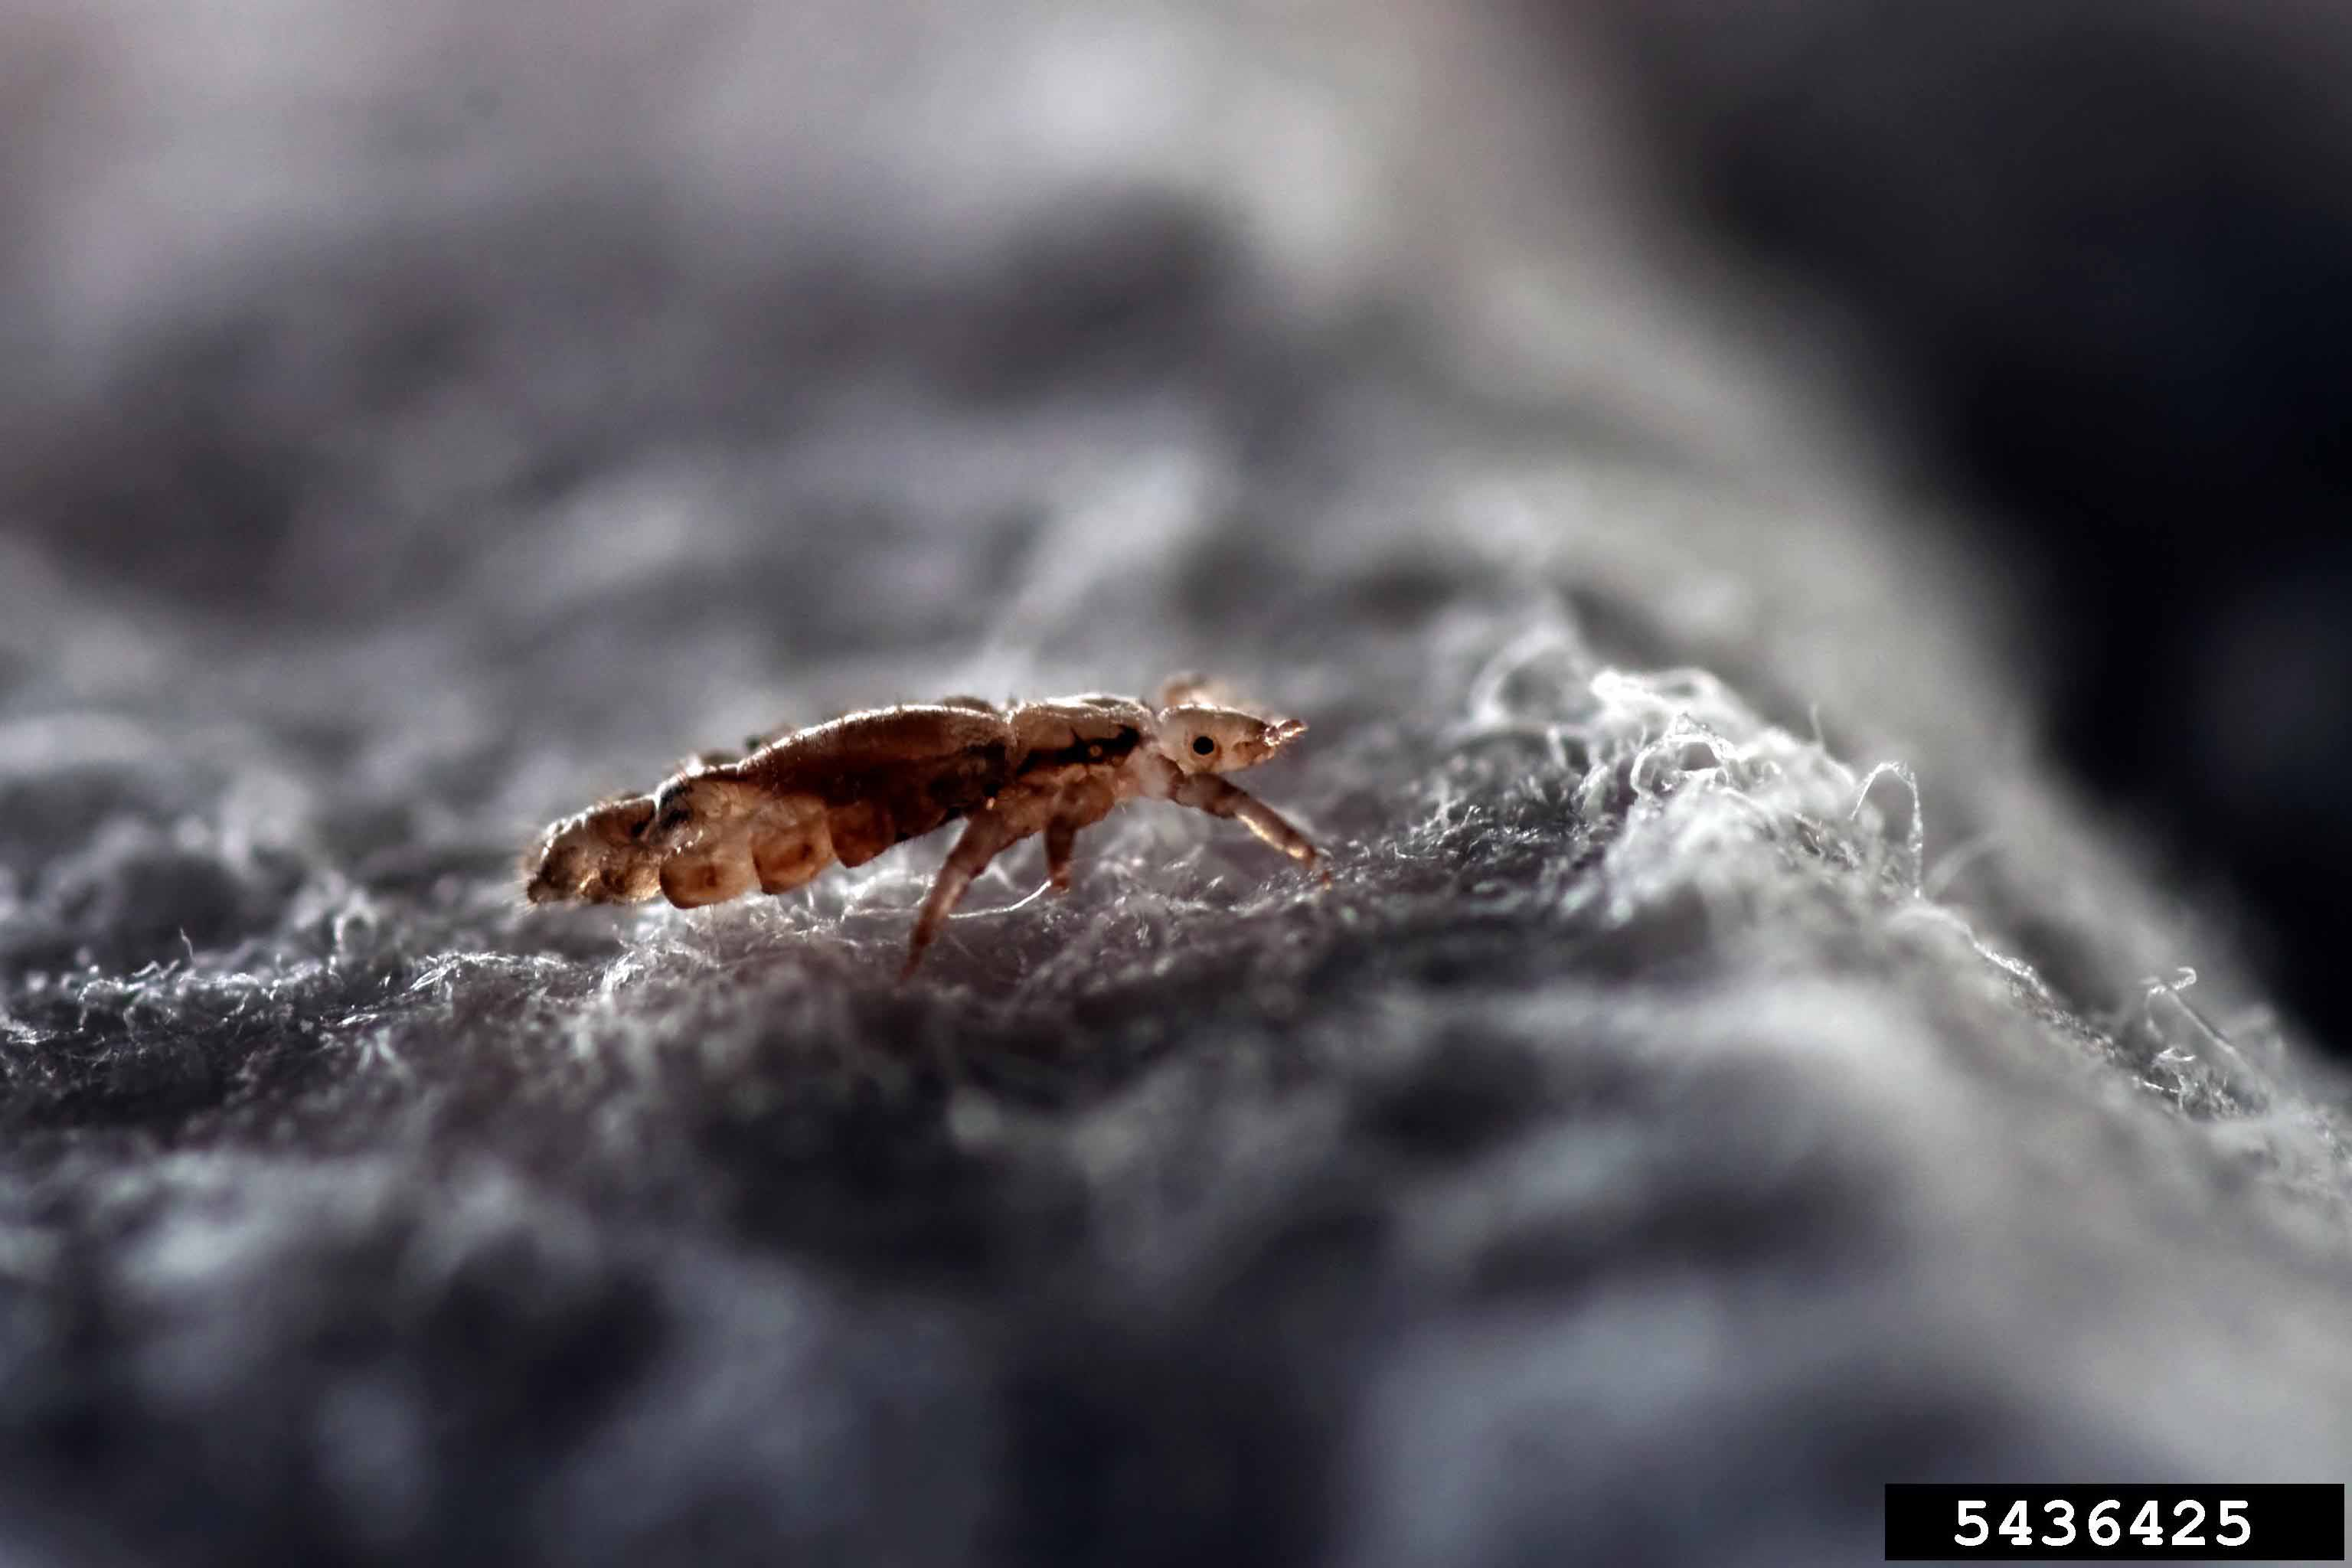 Insecticide-resistant head lice have been found in 37 states including Georgia, but there is no reason to panic.